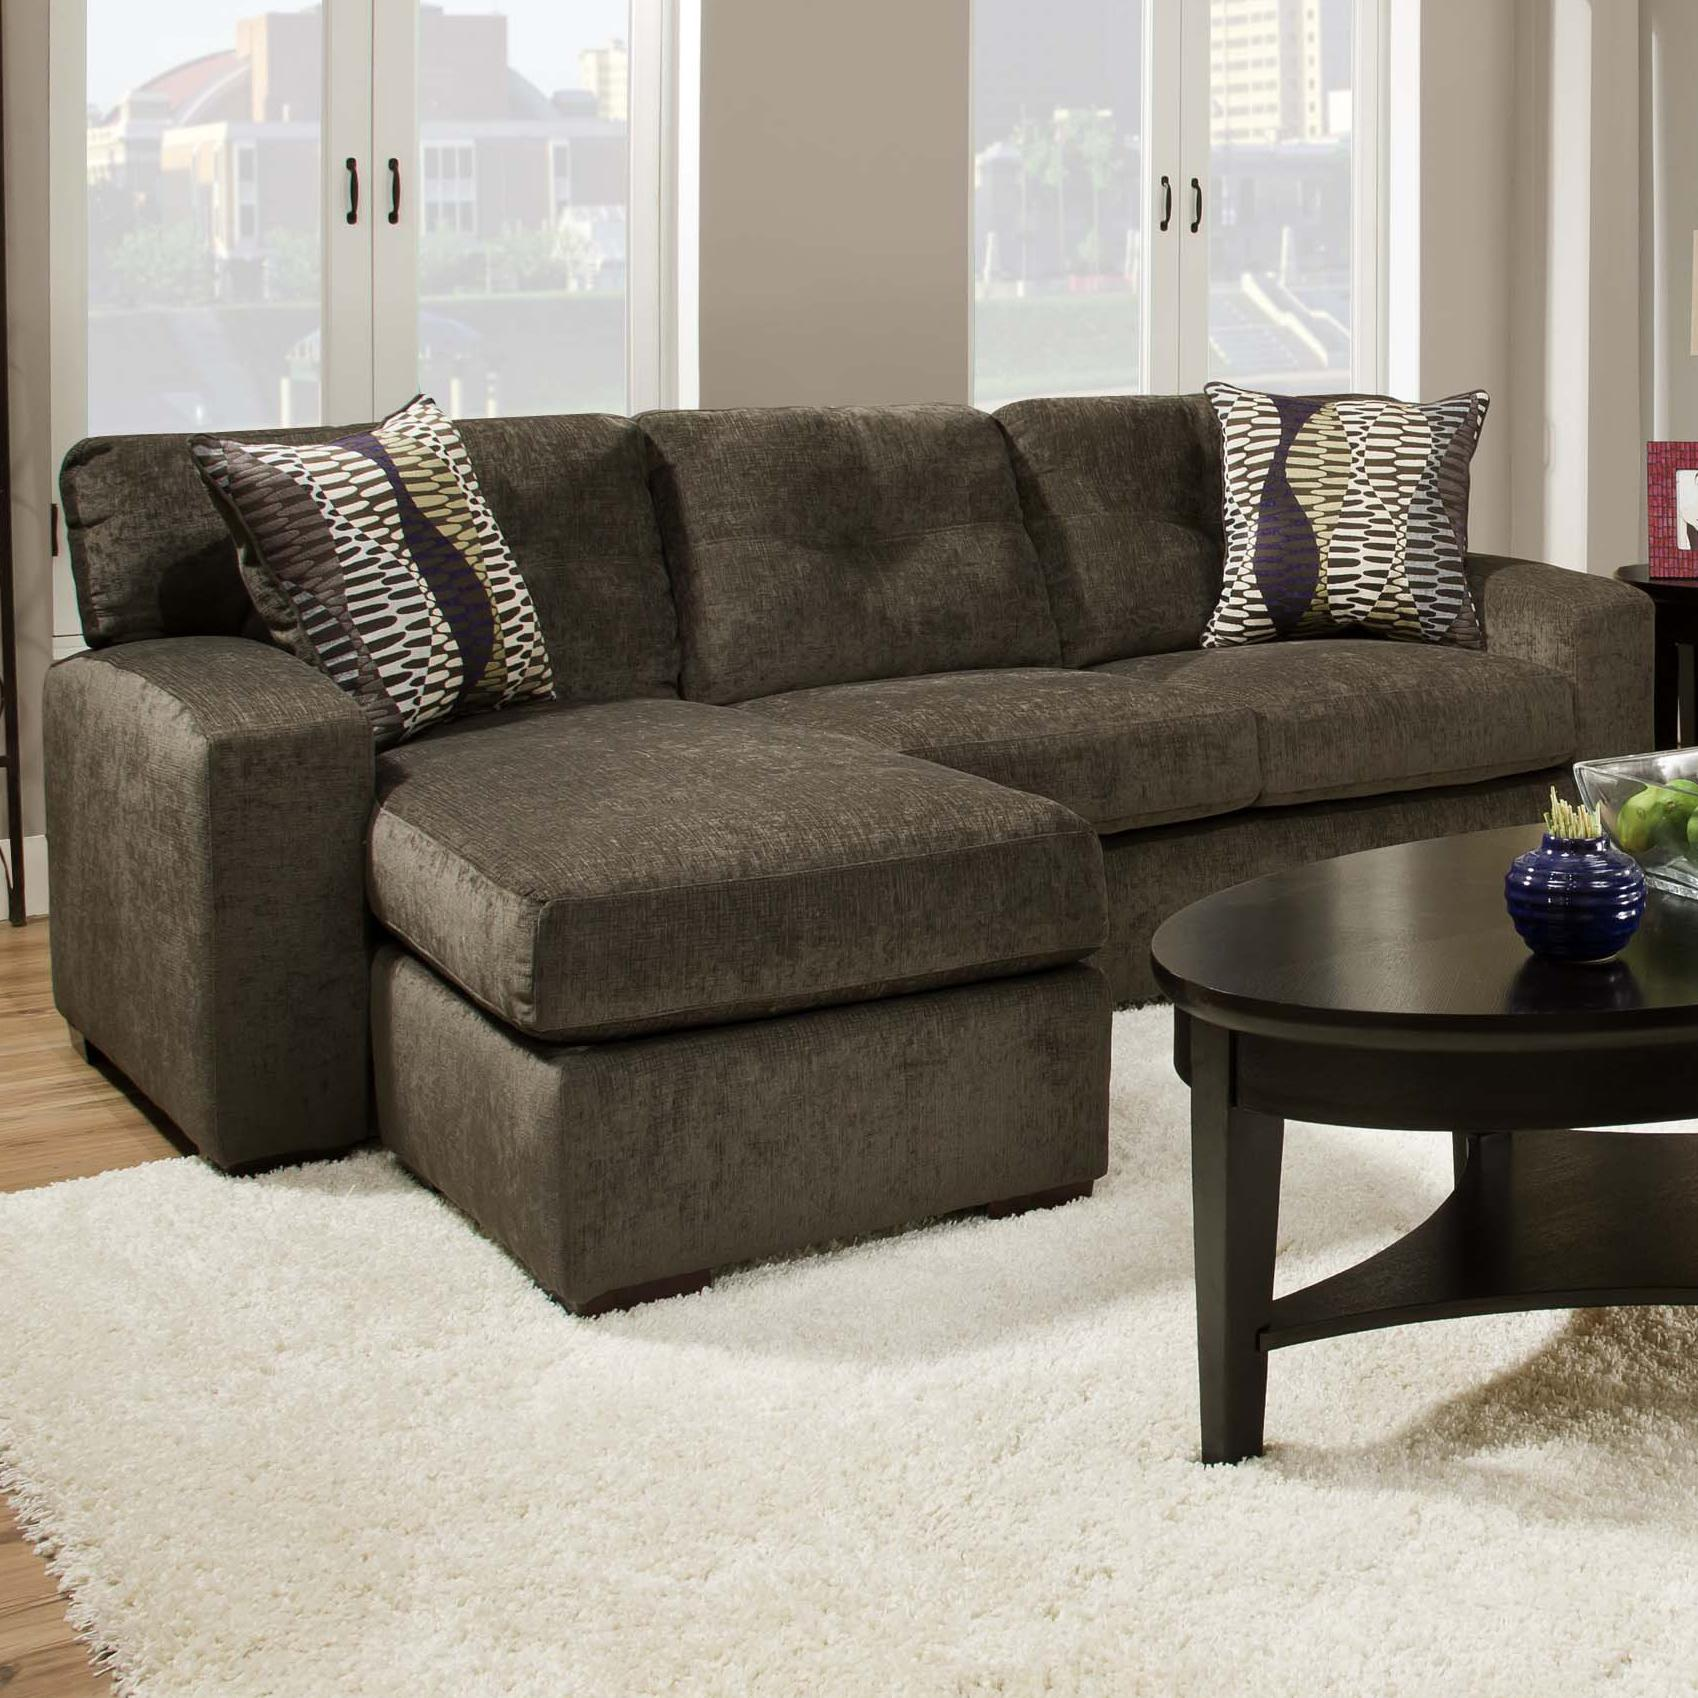 american furniture 5100 group small sectional sofa with chaise ottoman miskelly furniture sofa. Black Bedroom Furniture Sets. Home Design Ideas